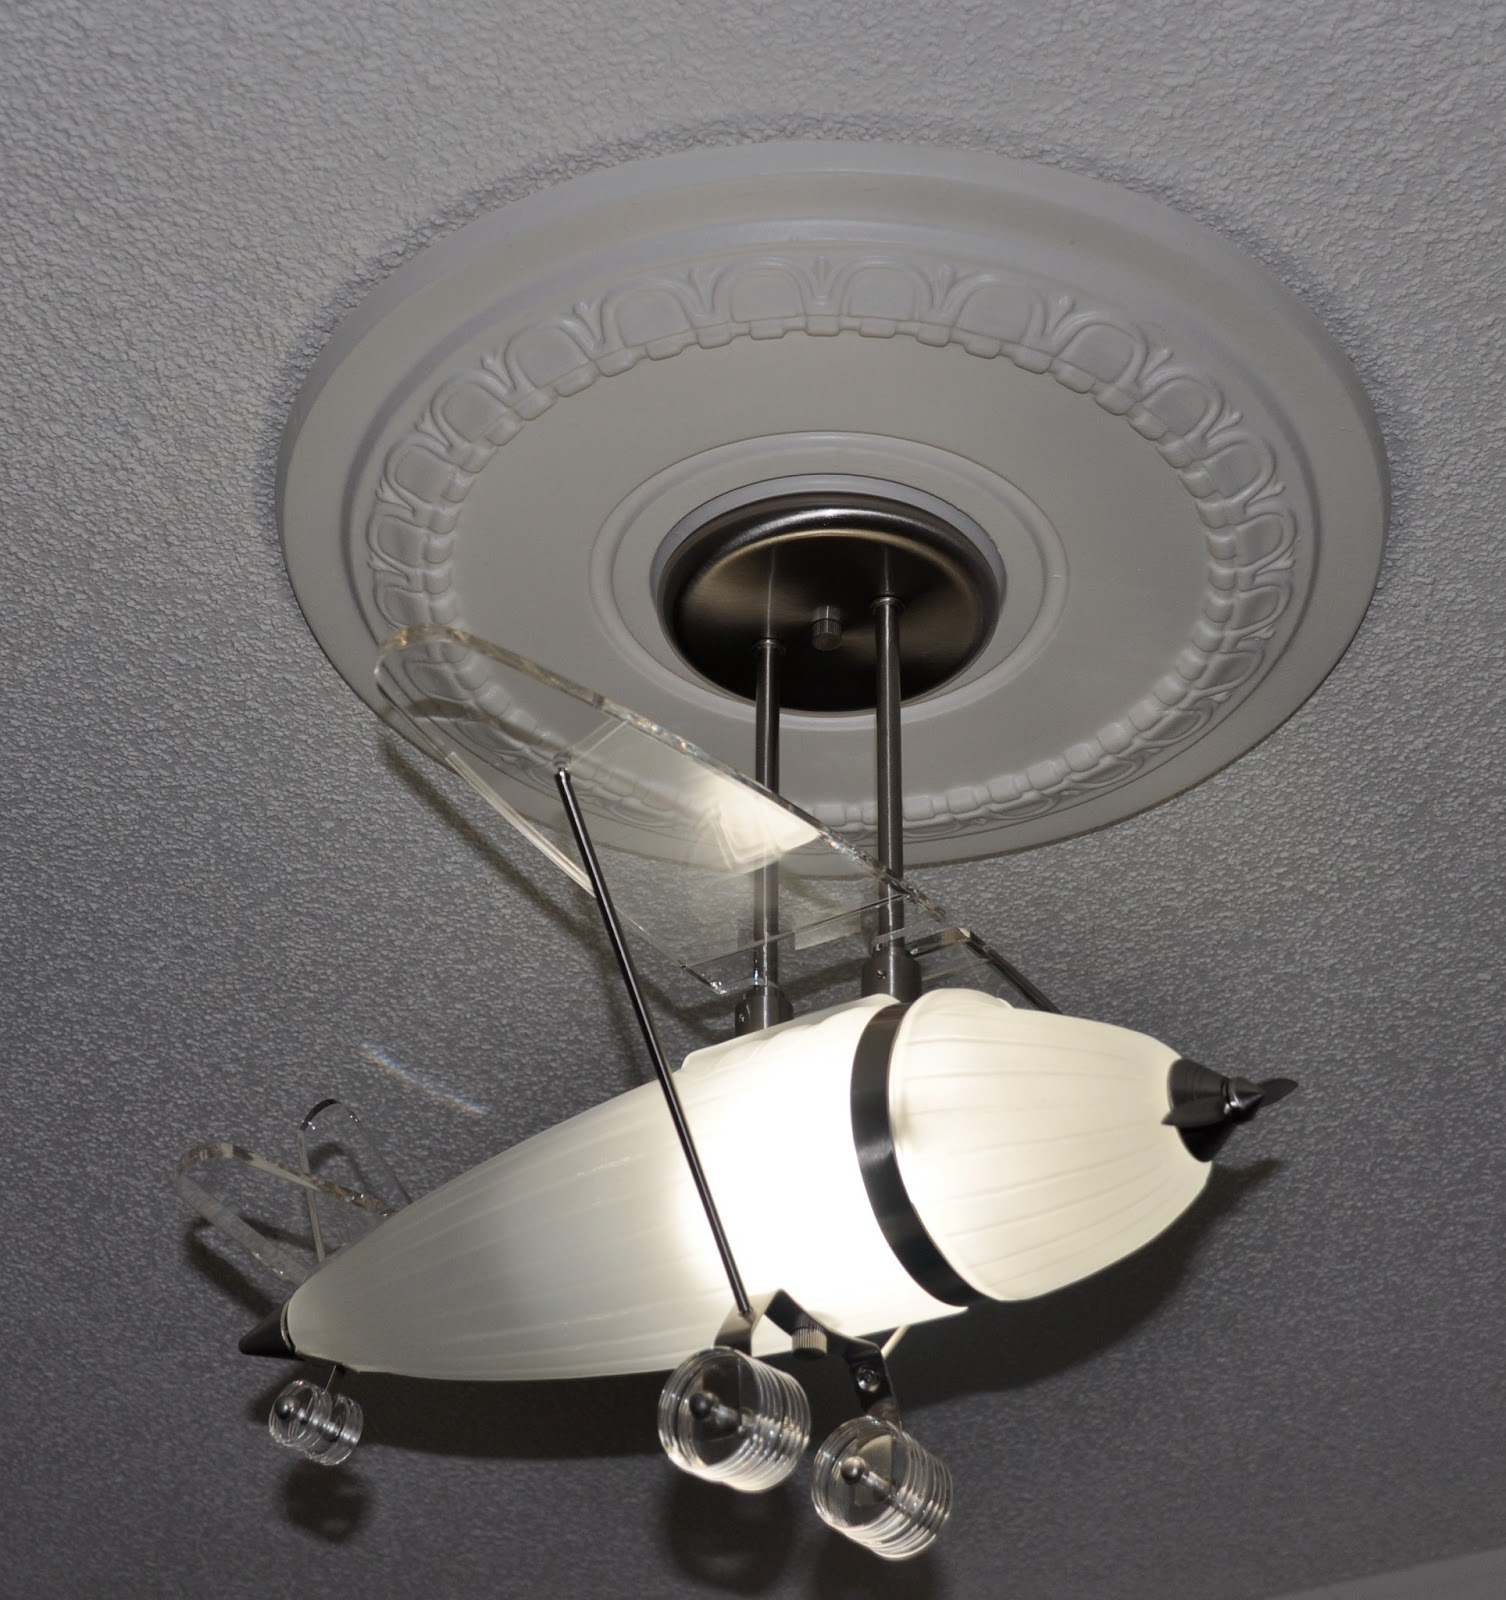 Airplane Light Fixture: Unique Lighting Fixture for the ...